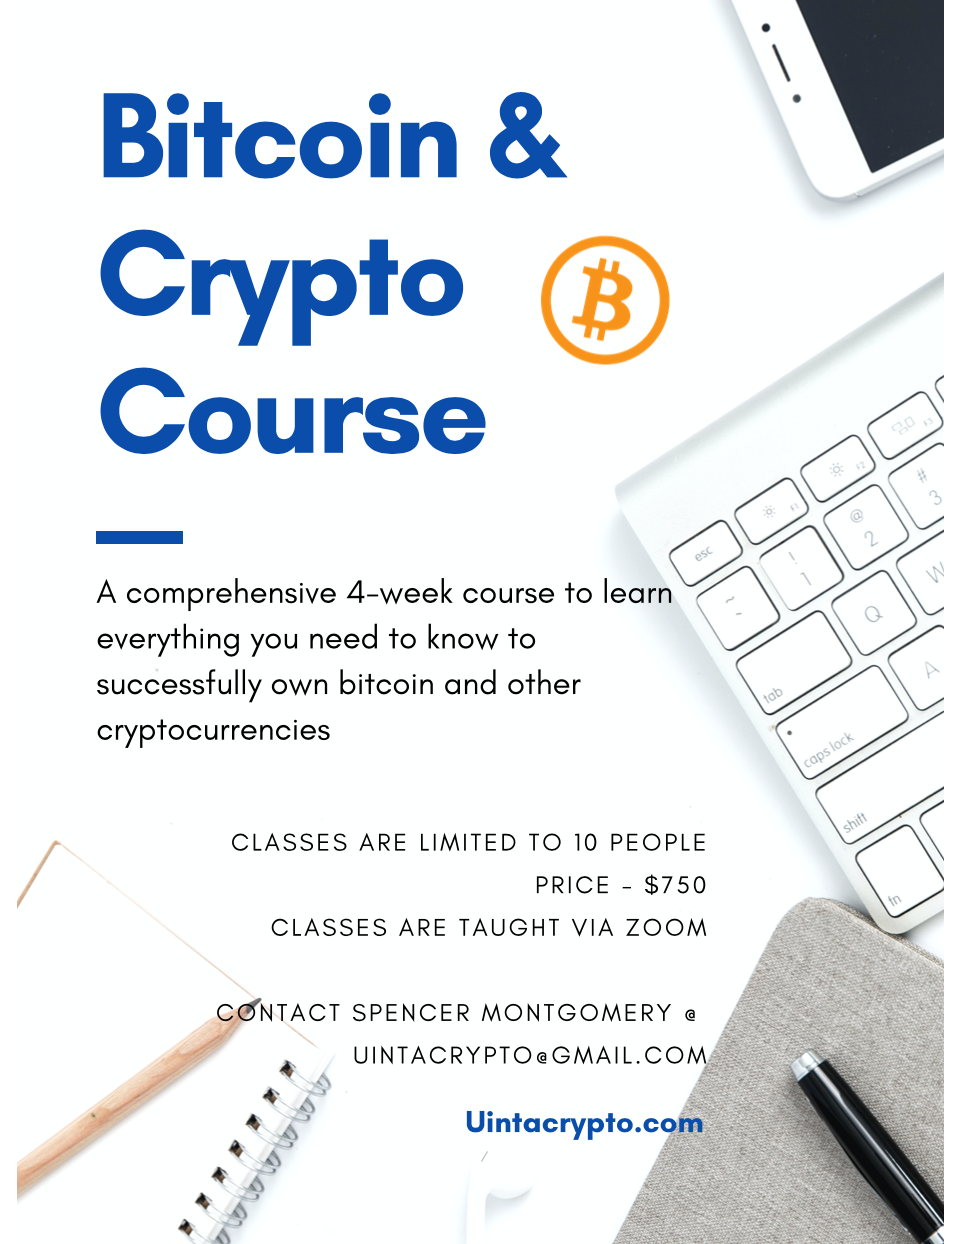 Cryptocurrency Course details